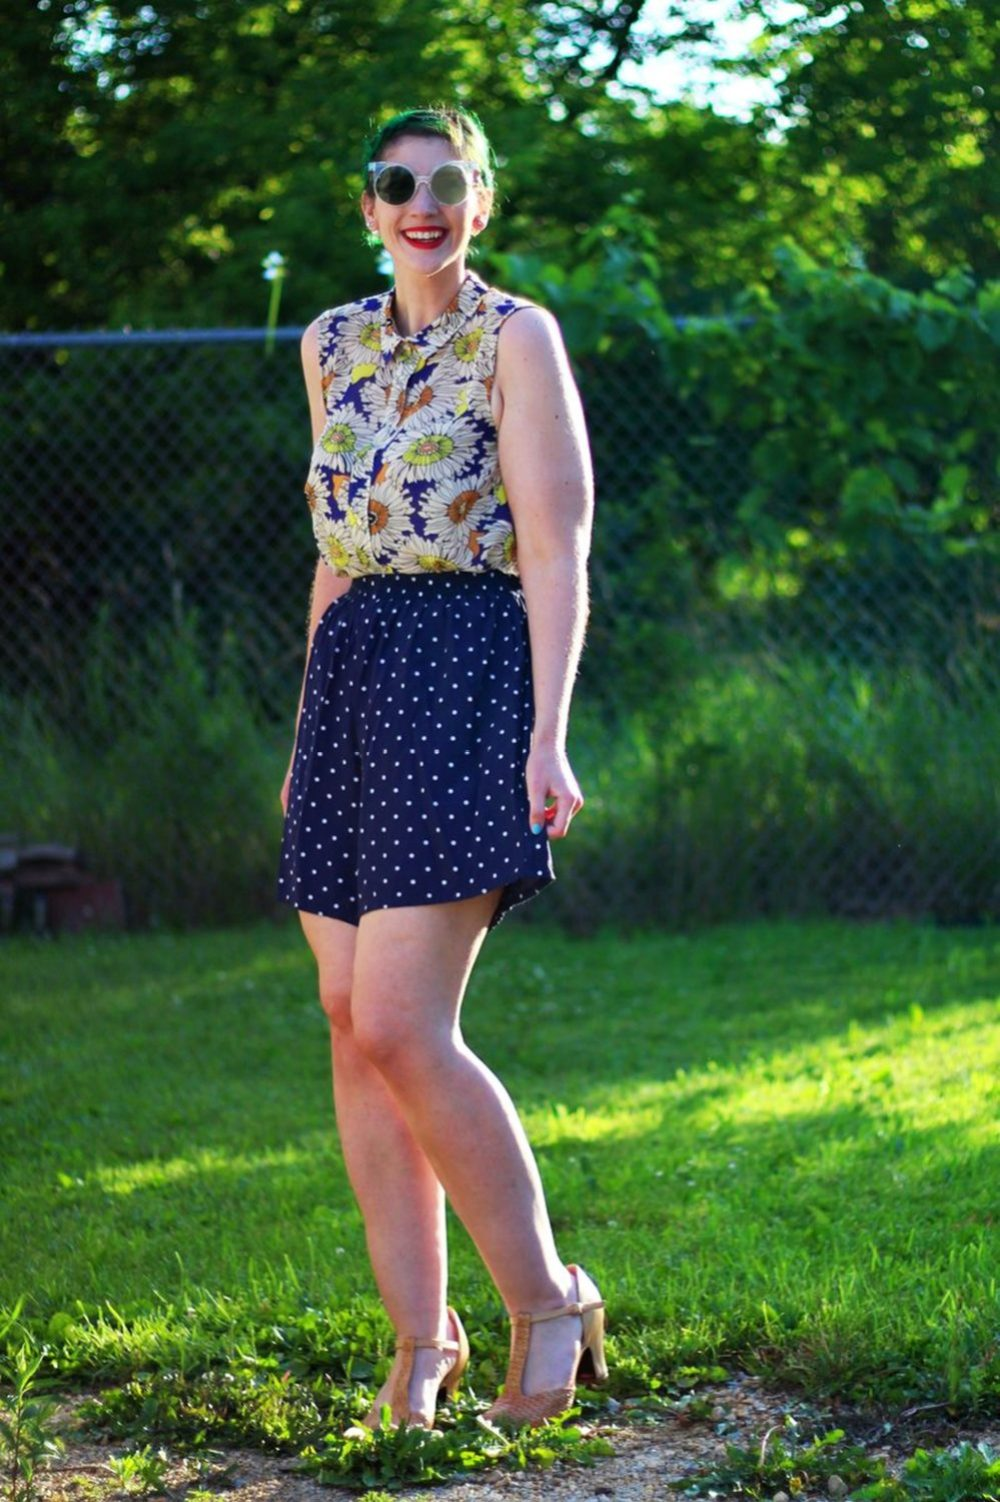 sunglasses-green-hair-vintage-floral-thrifted-summer-outfit-03